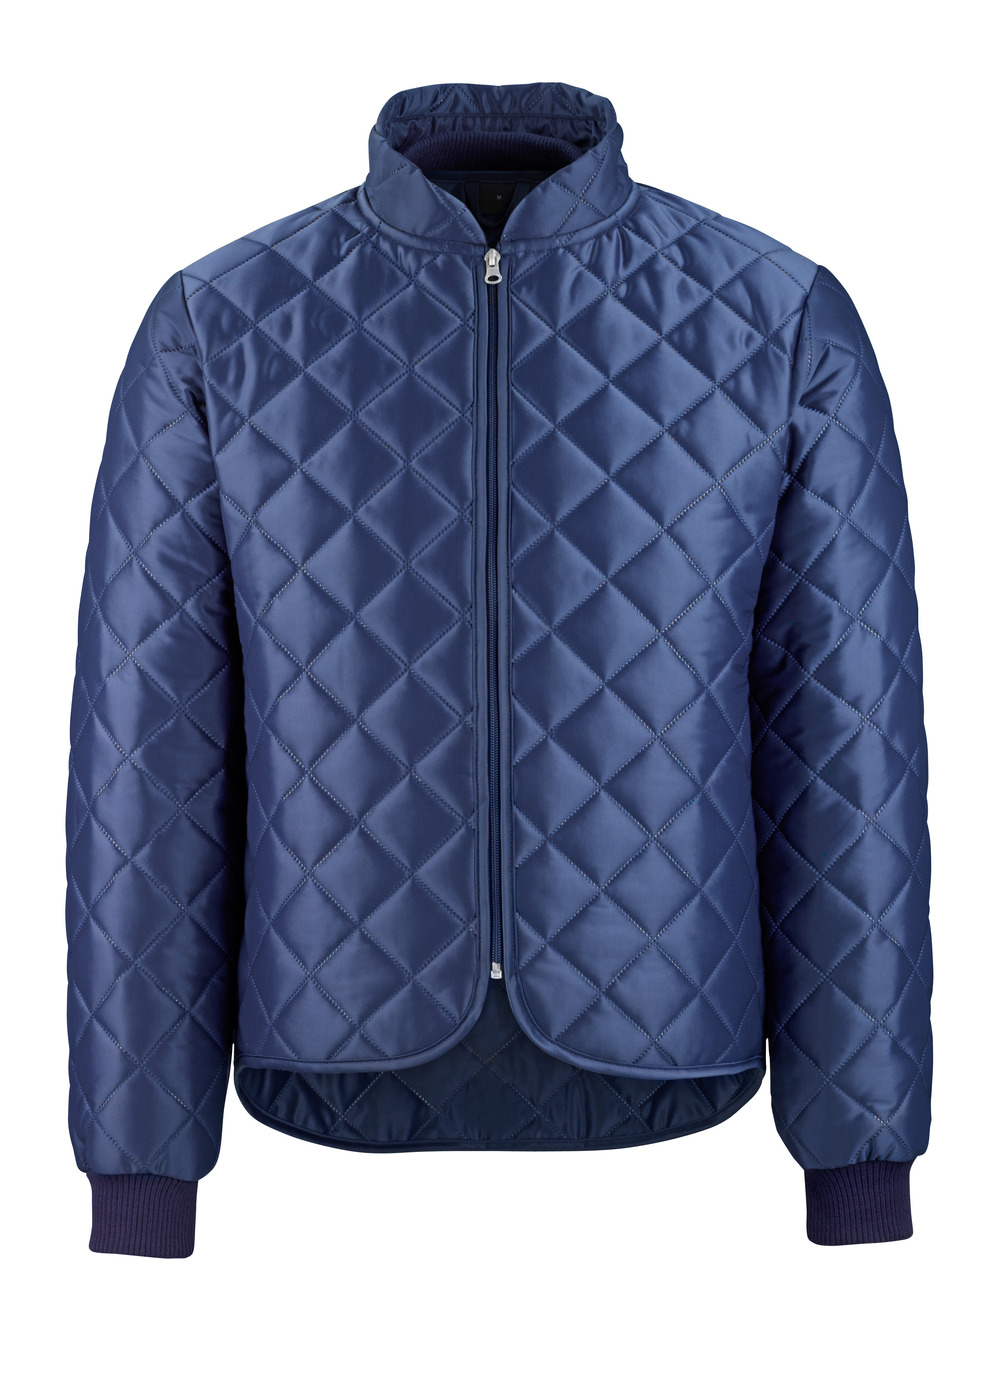 14501-707-01 Thermal Jacket - navy